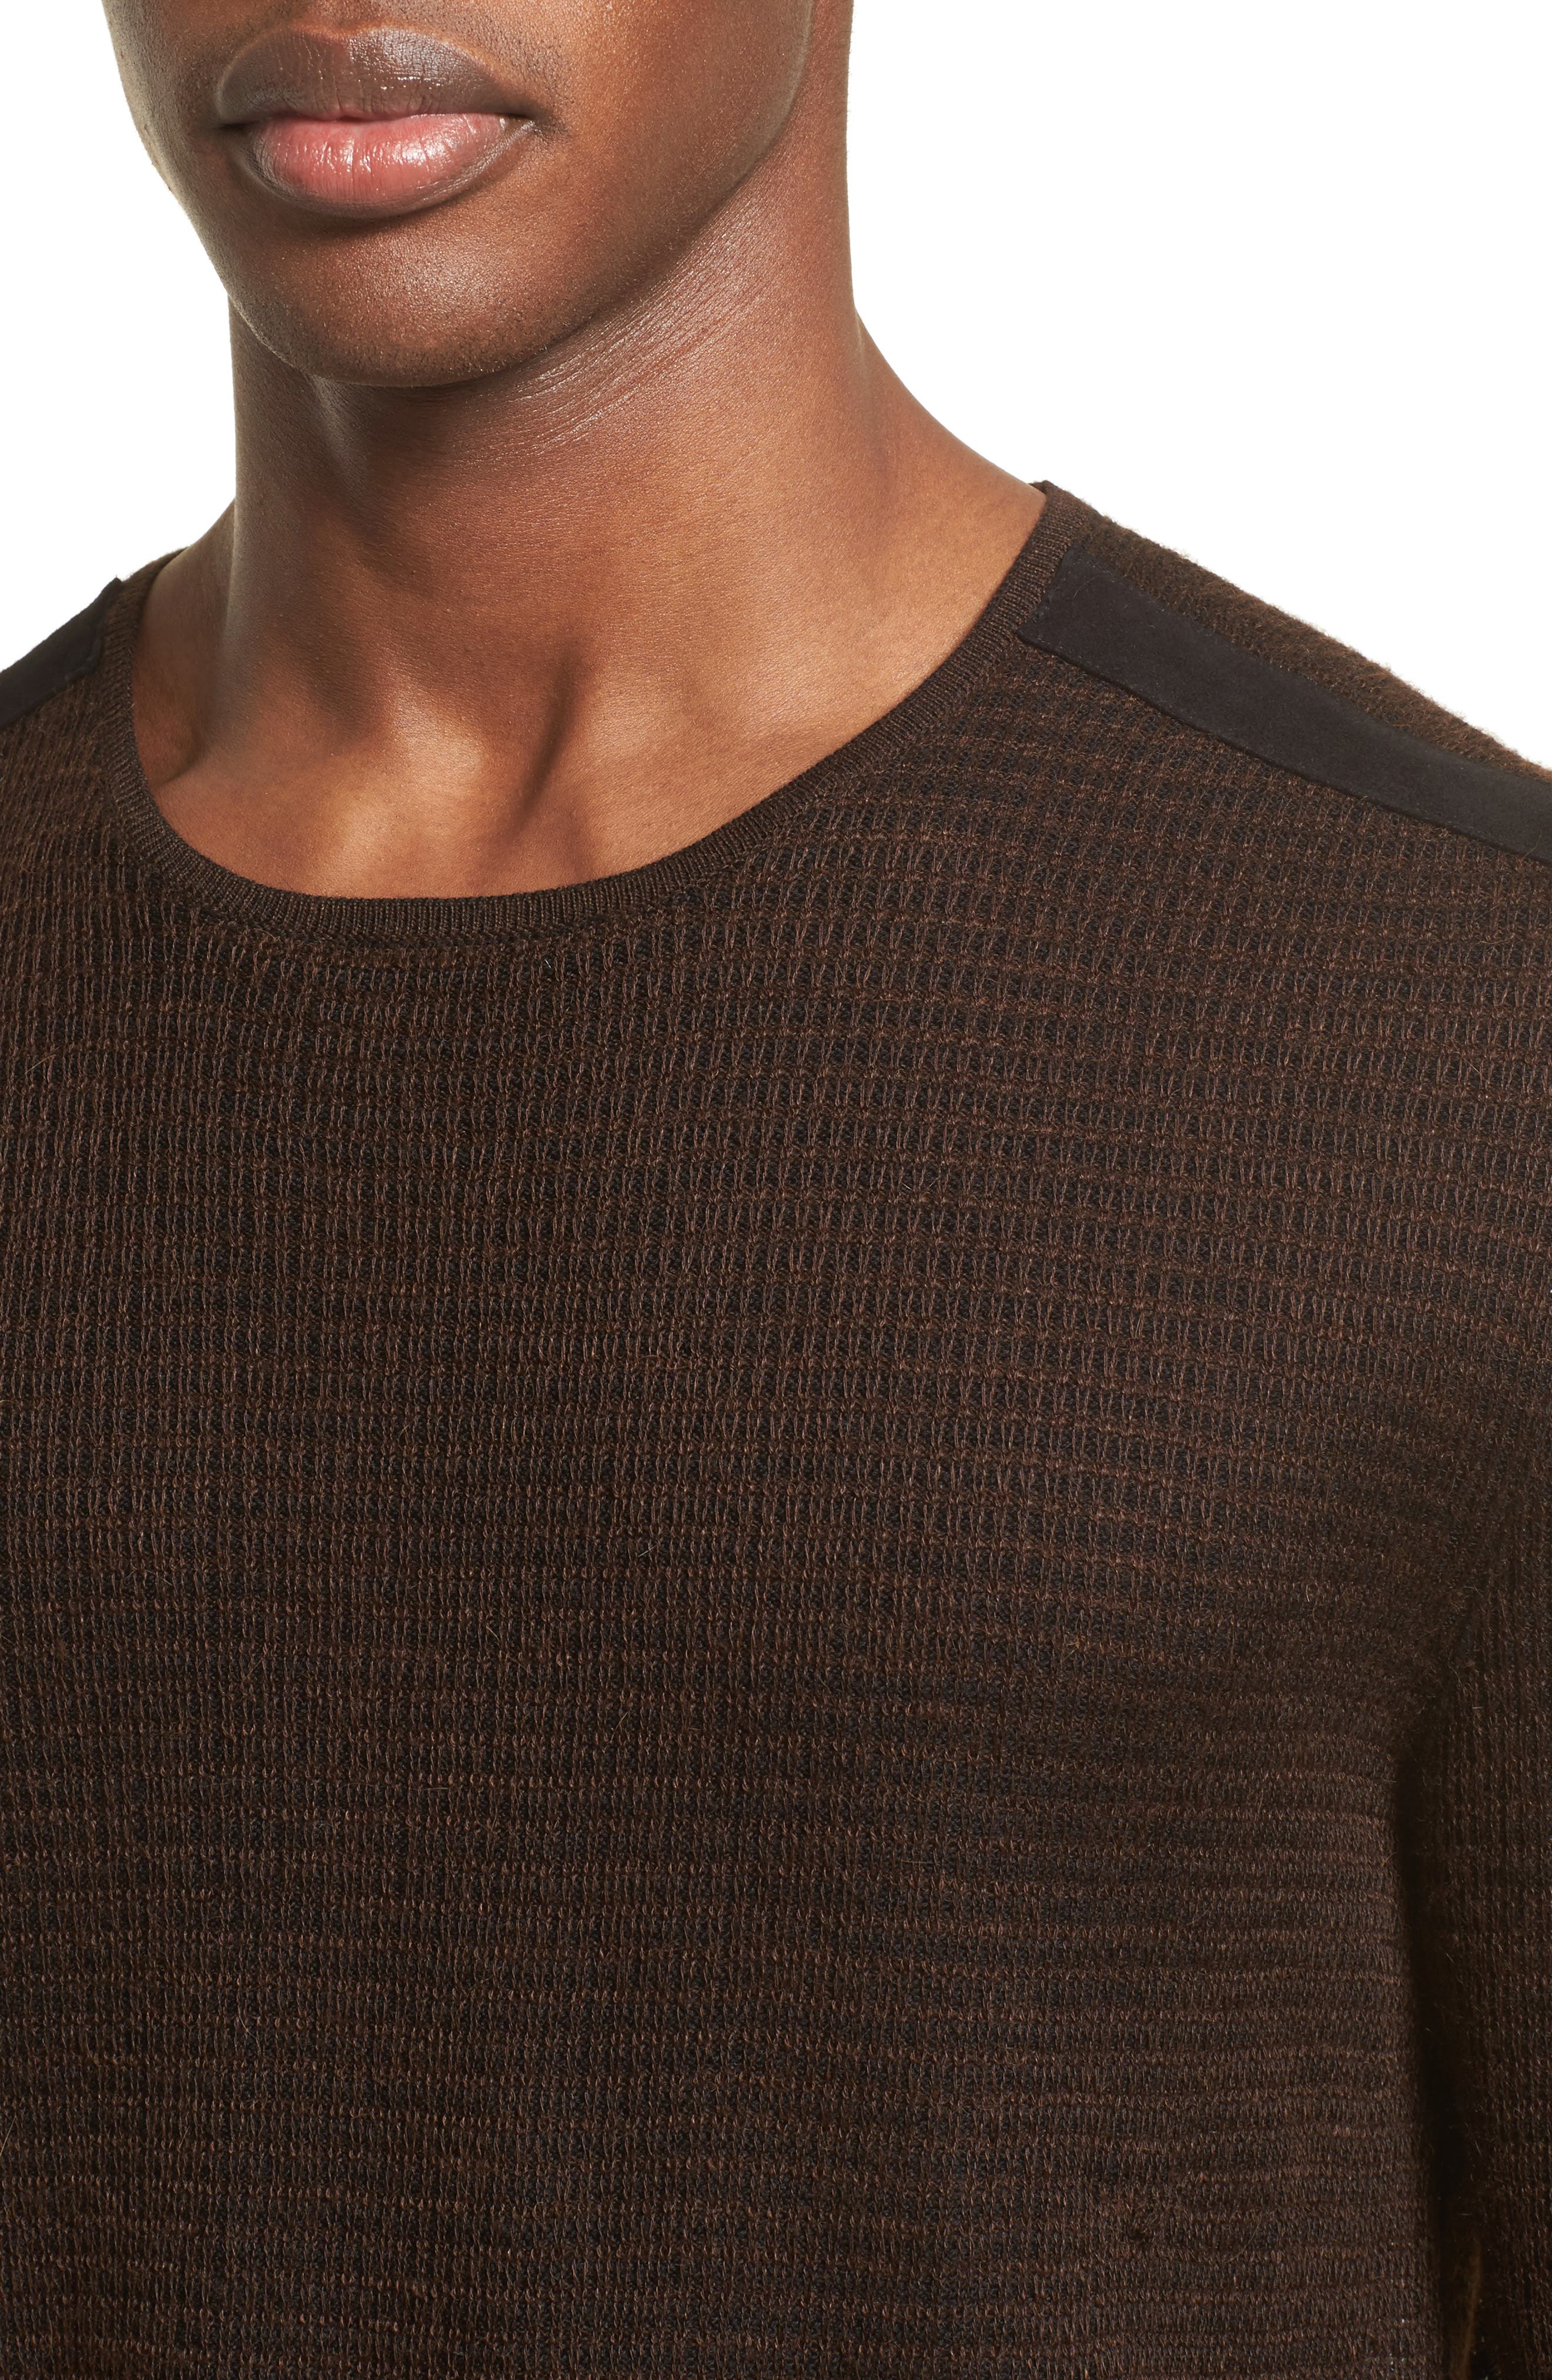 Waffle Knit Sweater,                             Alternate thumbnail 4, color,                             212